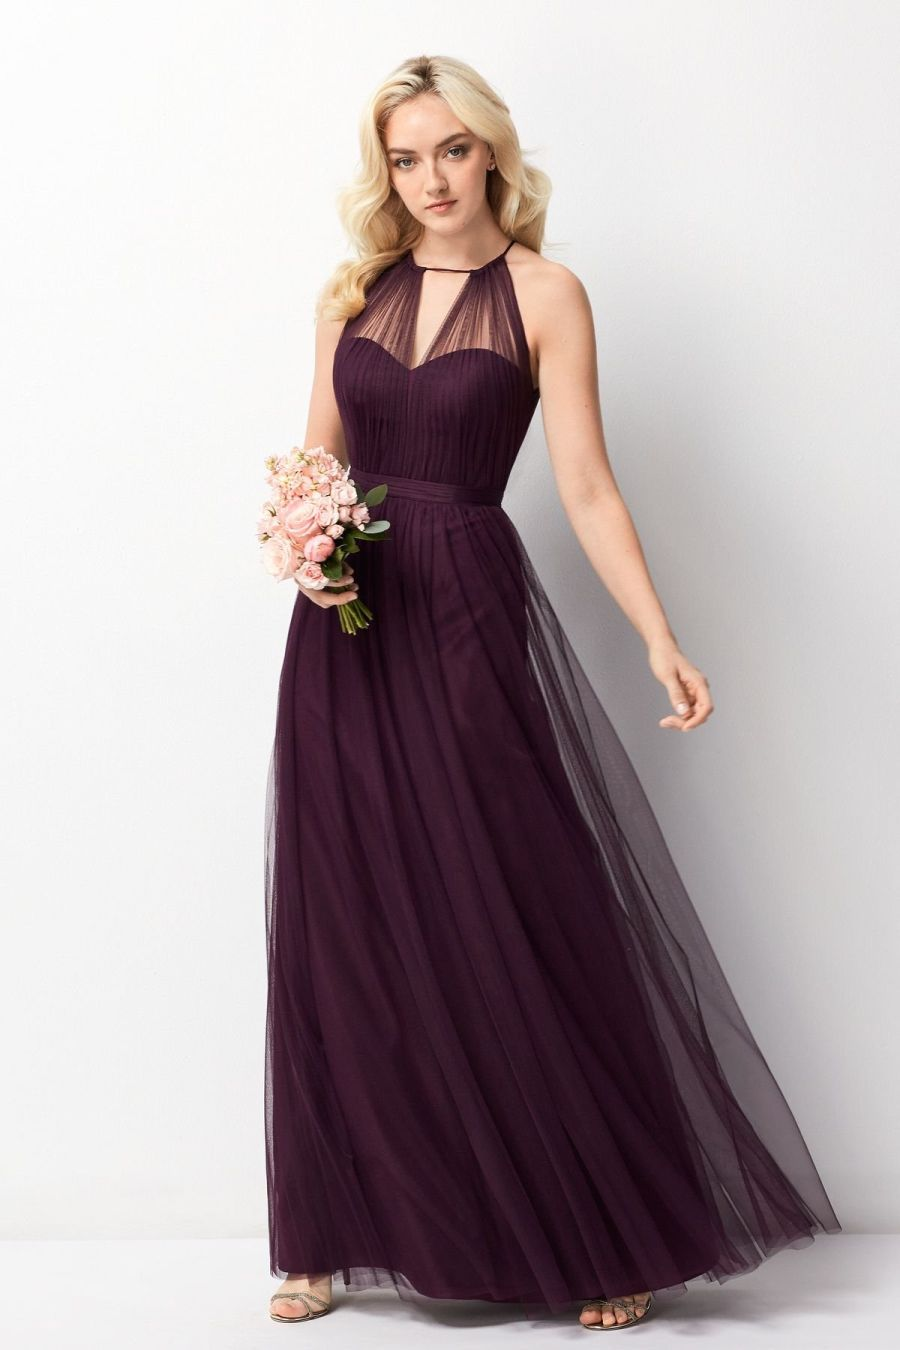 8939215e14bf Size 14 Eggplant- Wtoo 242 is a floor length Bobbinet bridesmaid dress that  has a sheer high neck with keyhole.